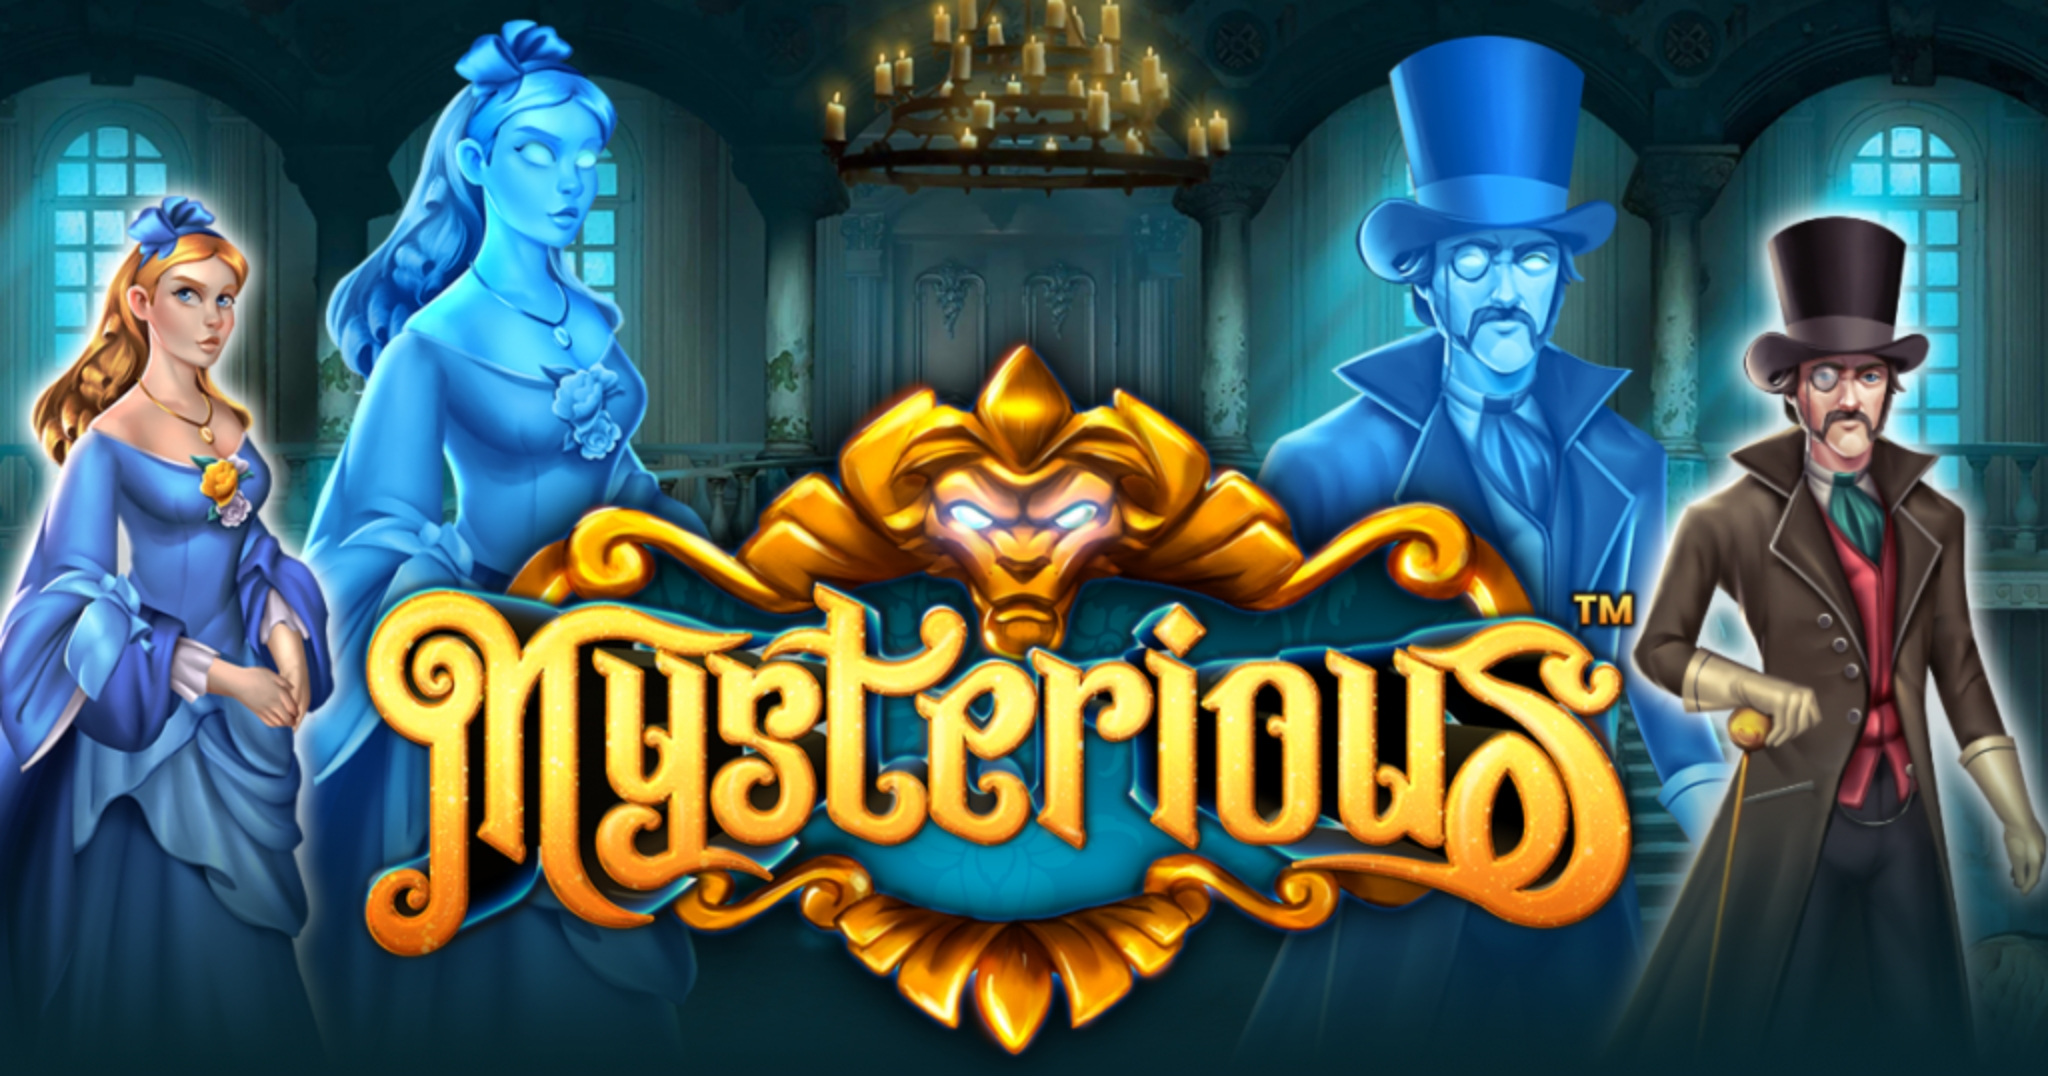 The Mysterious Online Slot Demo Game by Pragmatic Play